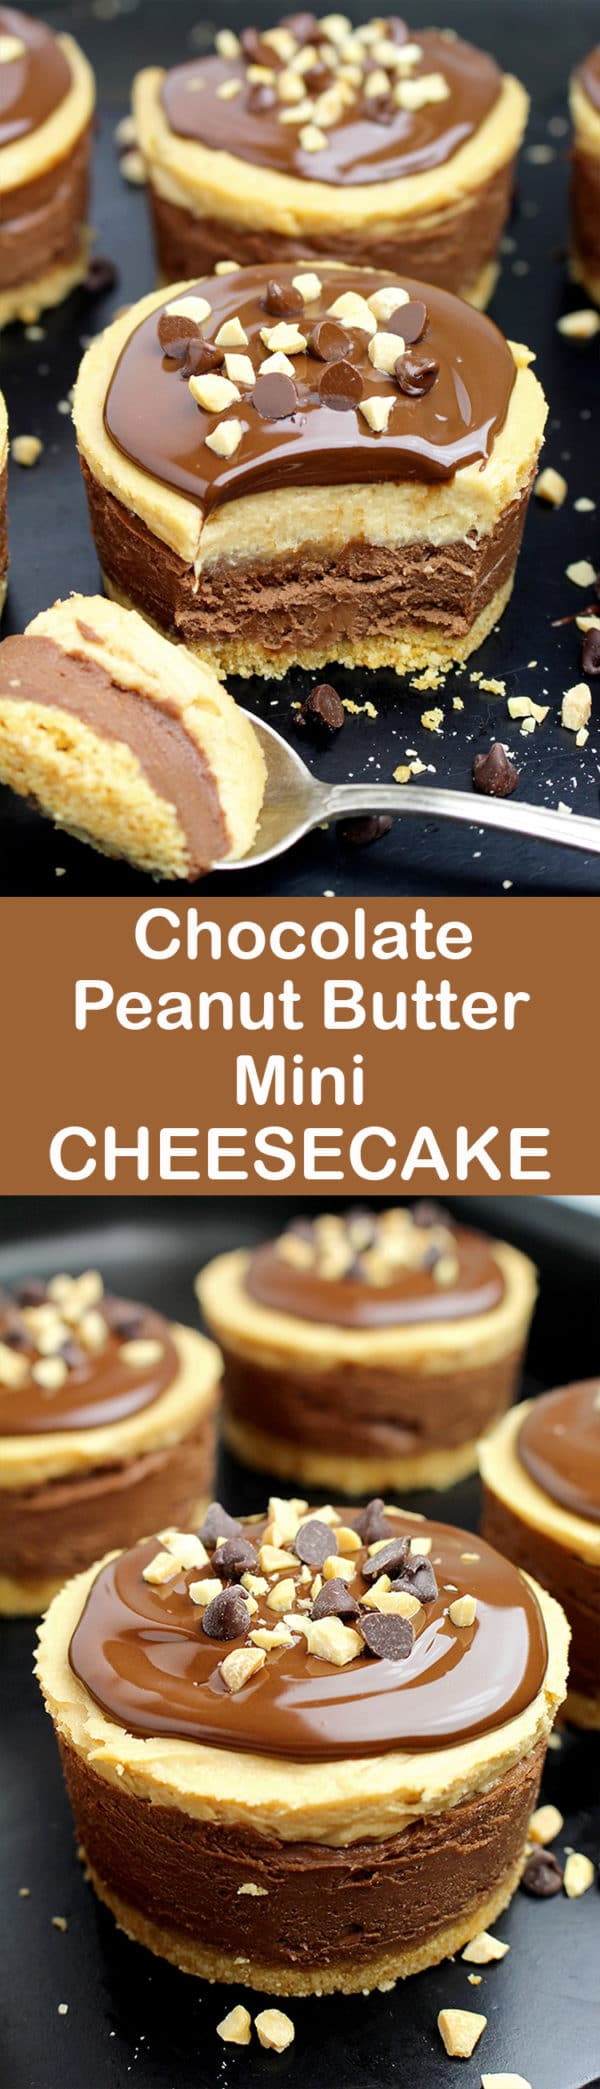 Chocolate and peanut butter… Do you like this combination? If your answer is yes, we have an awesome dessert for you – No Bake Chocolate Peanut Butter Mini Cheesecake